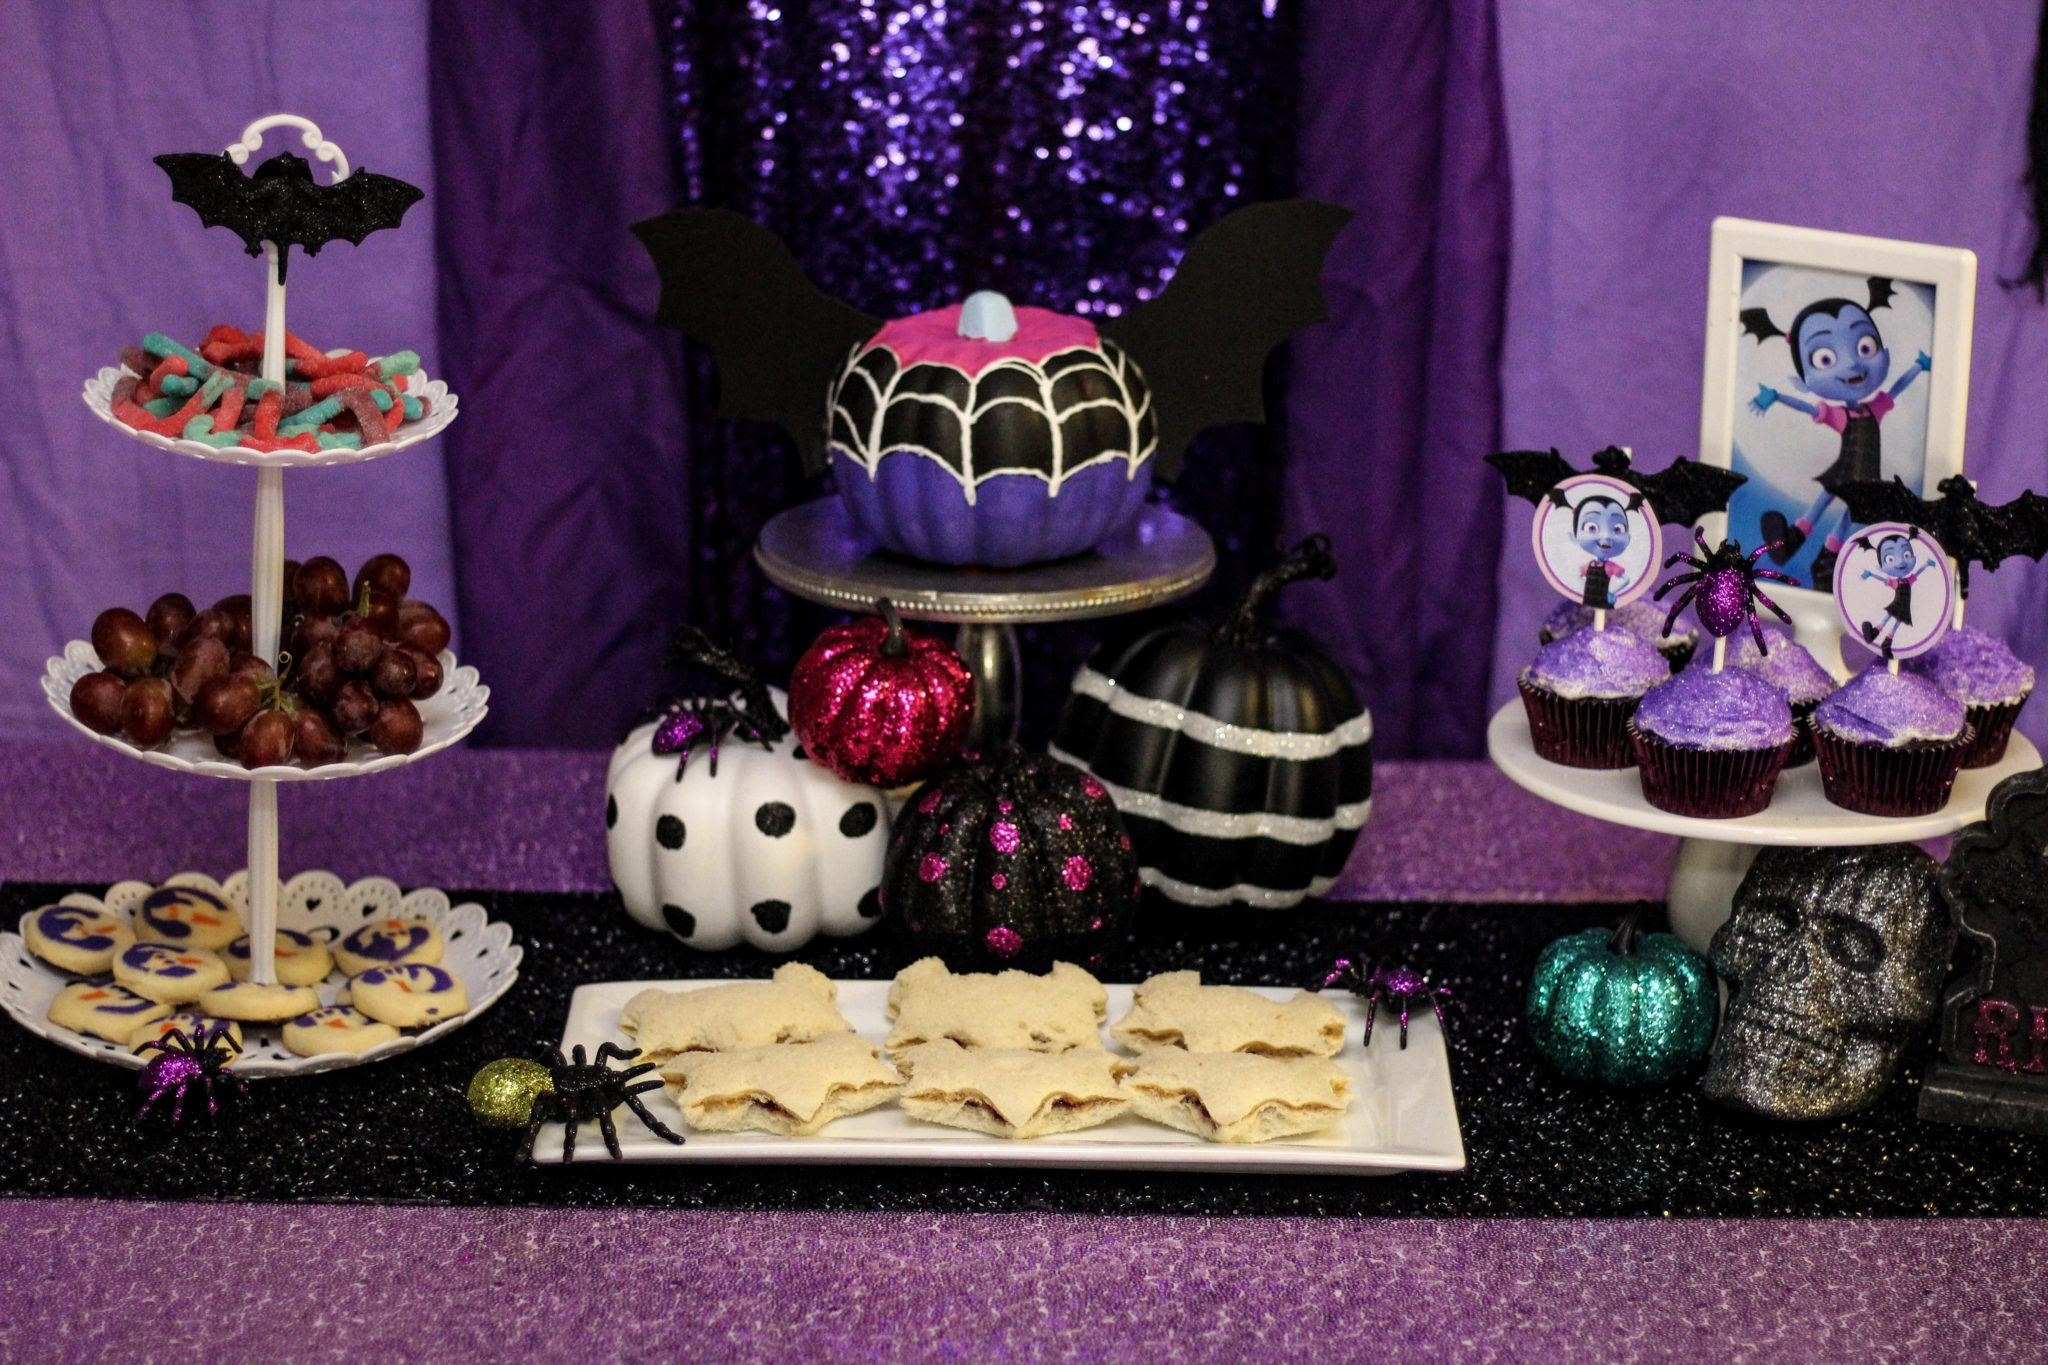 Halloween Themed Birthday Party For Toddler.Vampirina Party Ideas Free Printables For Birthday Or Halloween